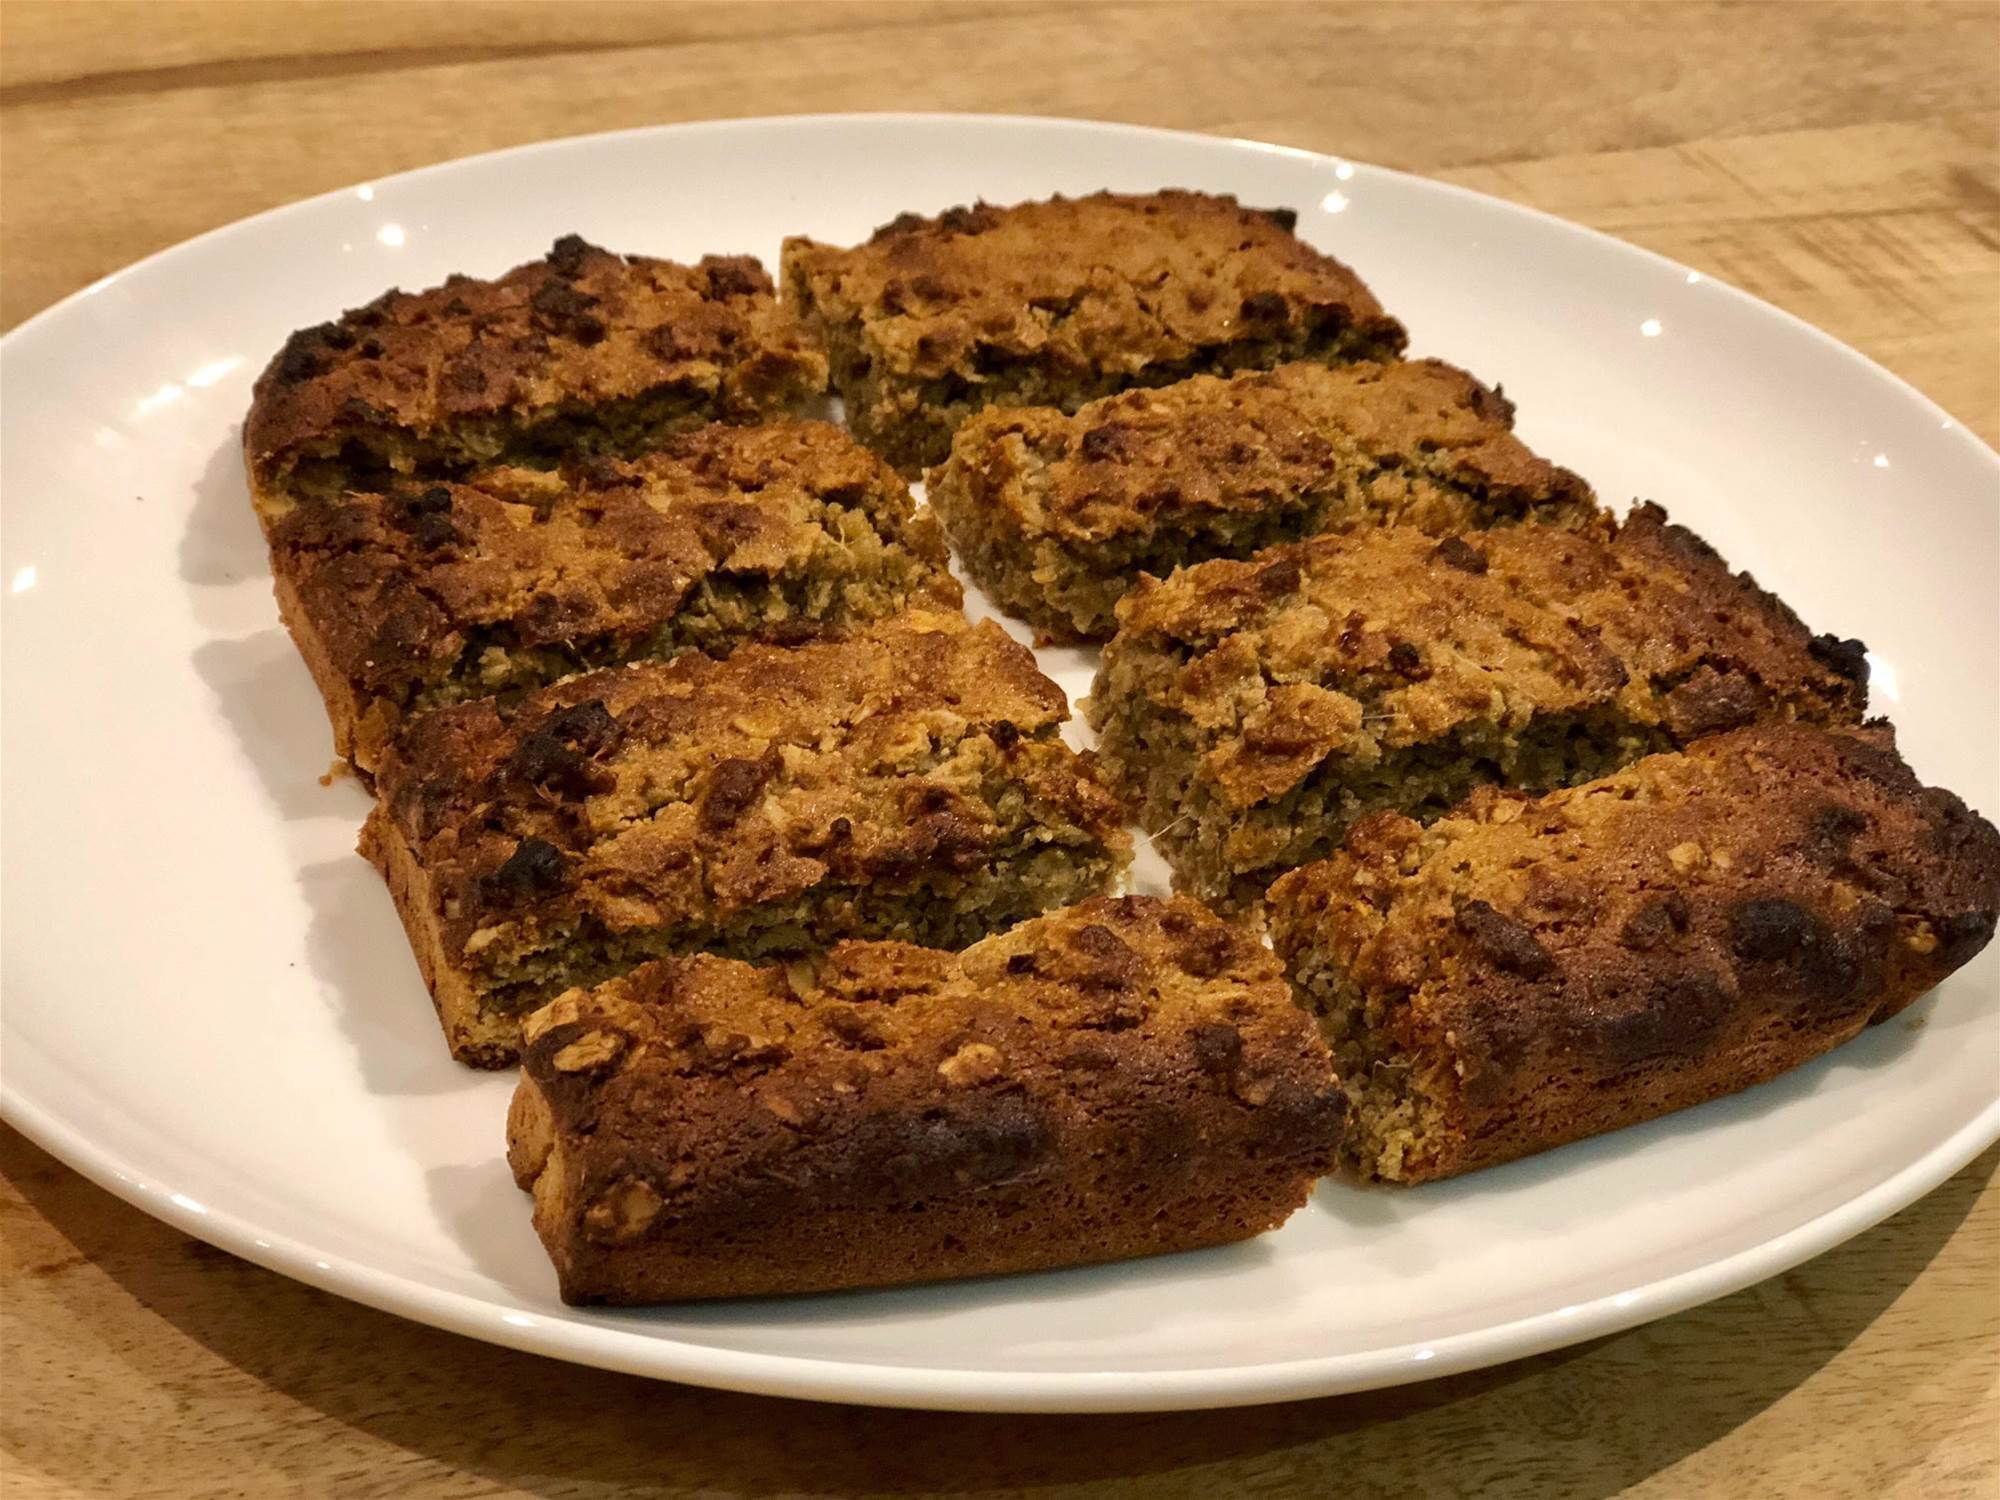 RECIPE: Oaty Ginger Bars